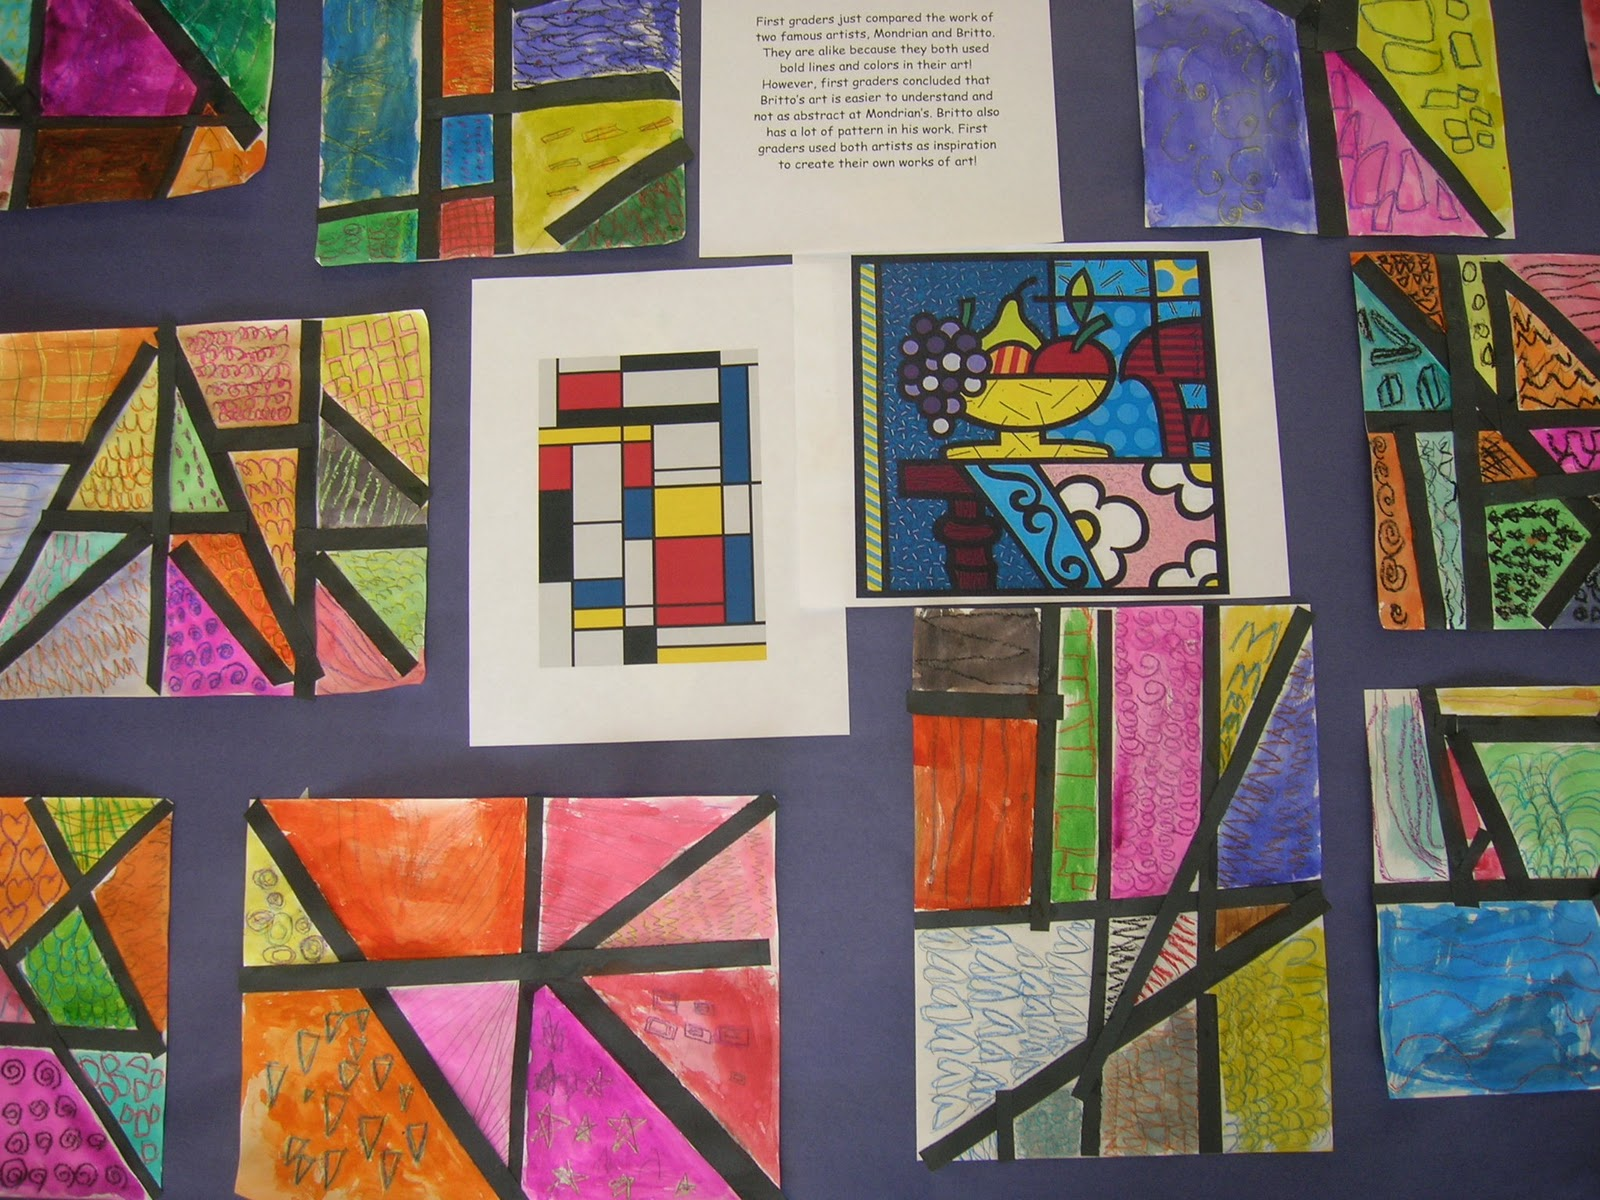 Line Art Elementary : The elementary art room mondrian meets britto